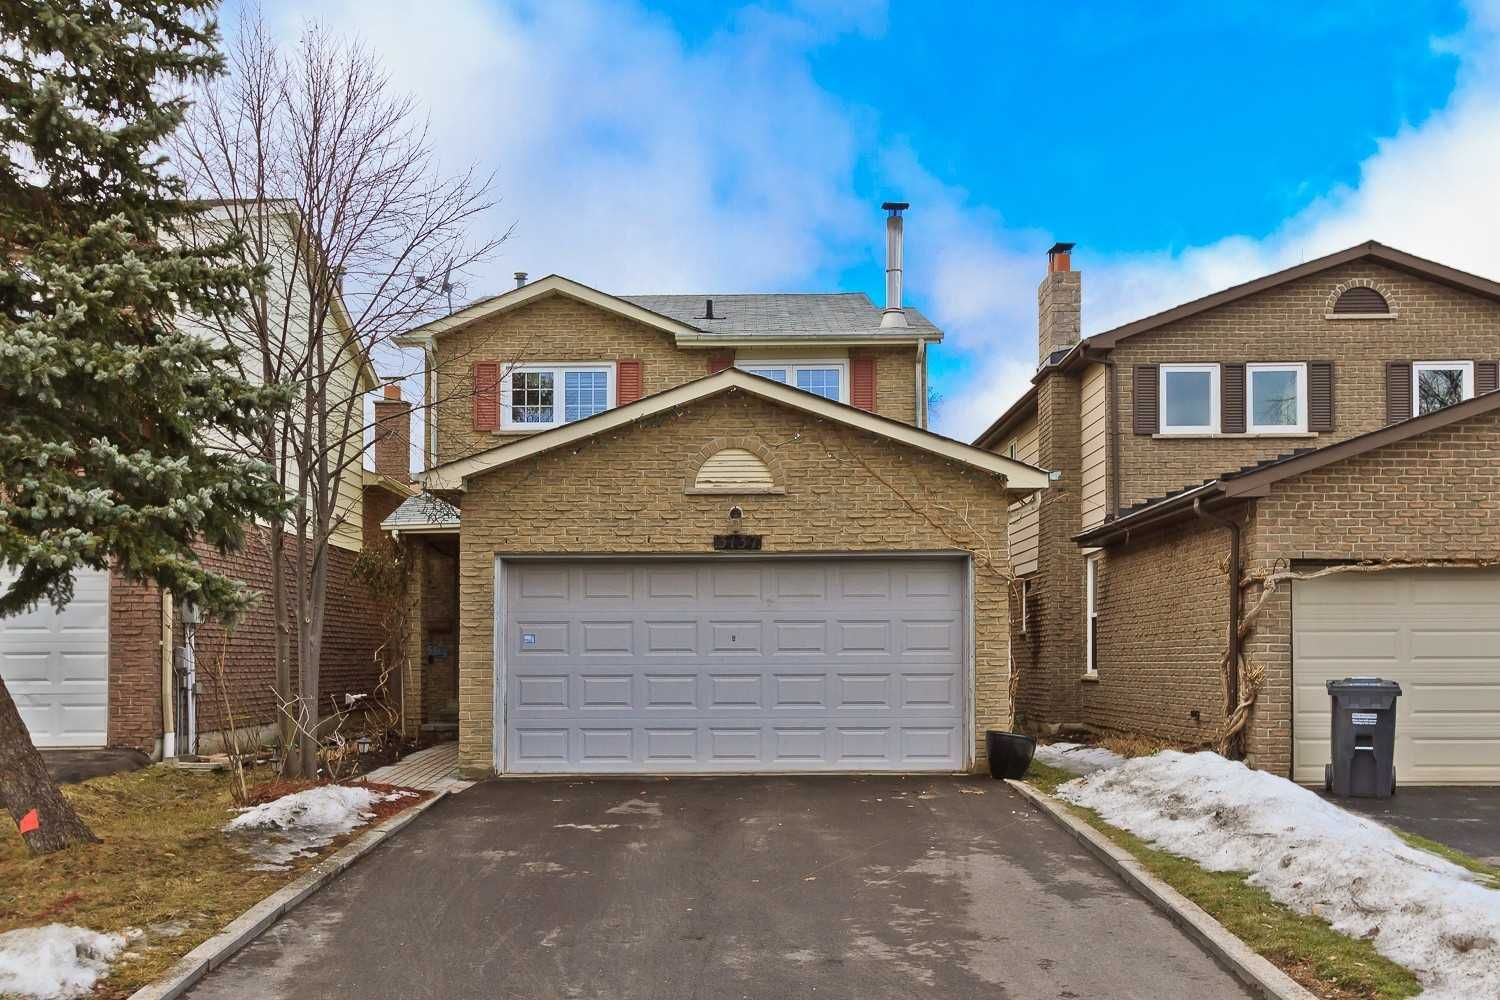 Main Photo: 3137 Harris Crescent in Mississauga: Meadowvale House (2-Storey) for sale : MLS®# W4353585